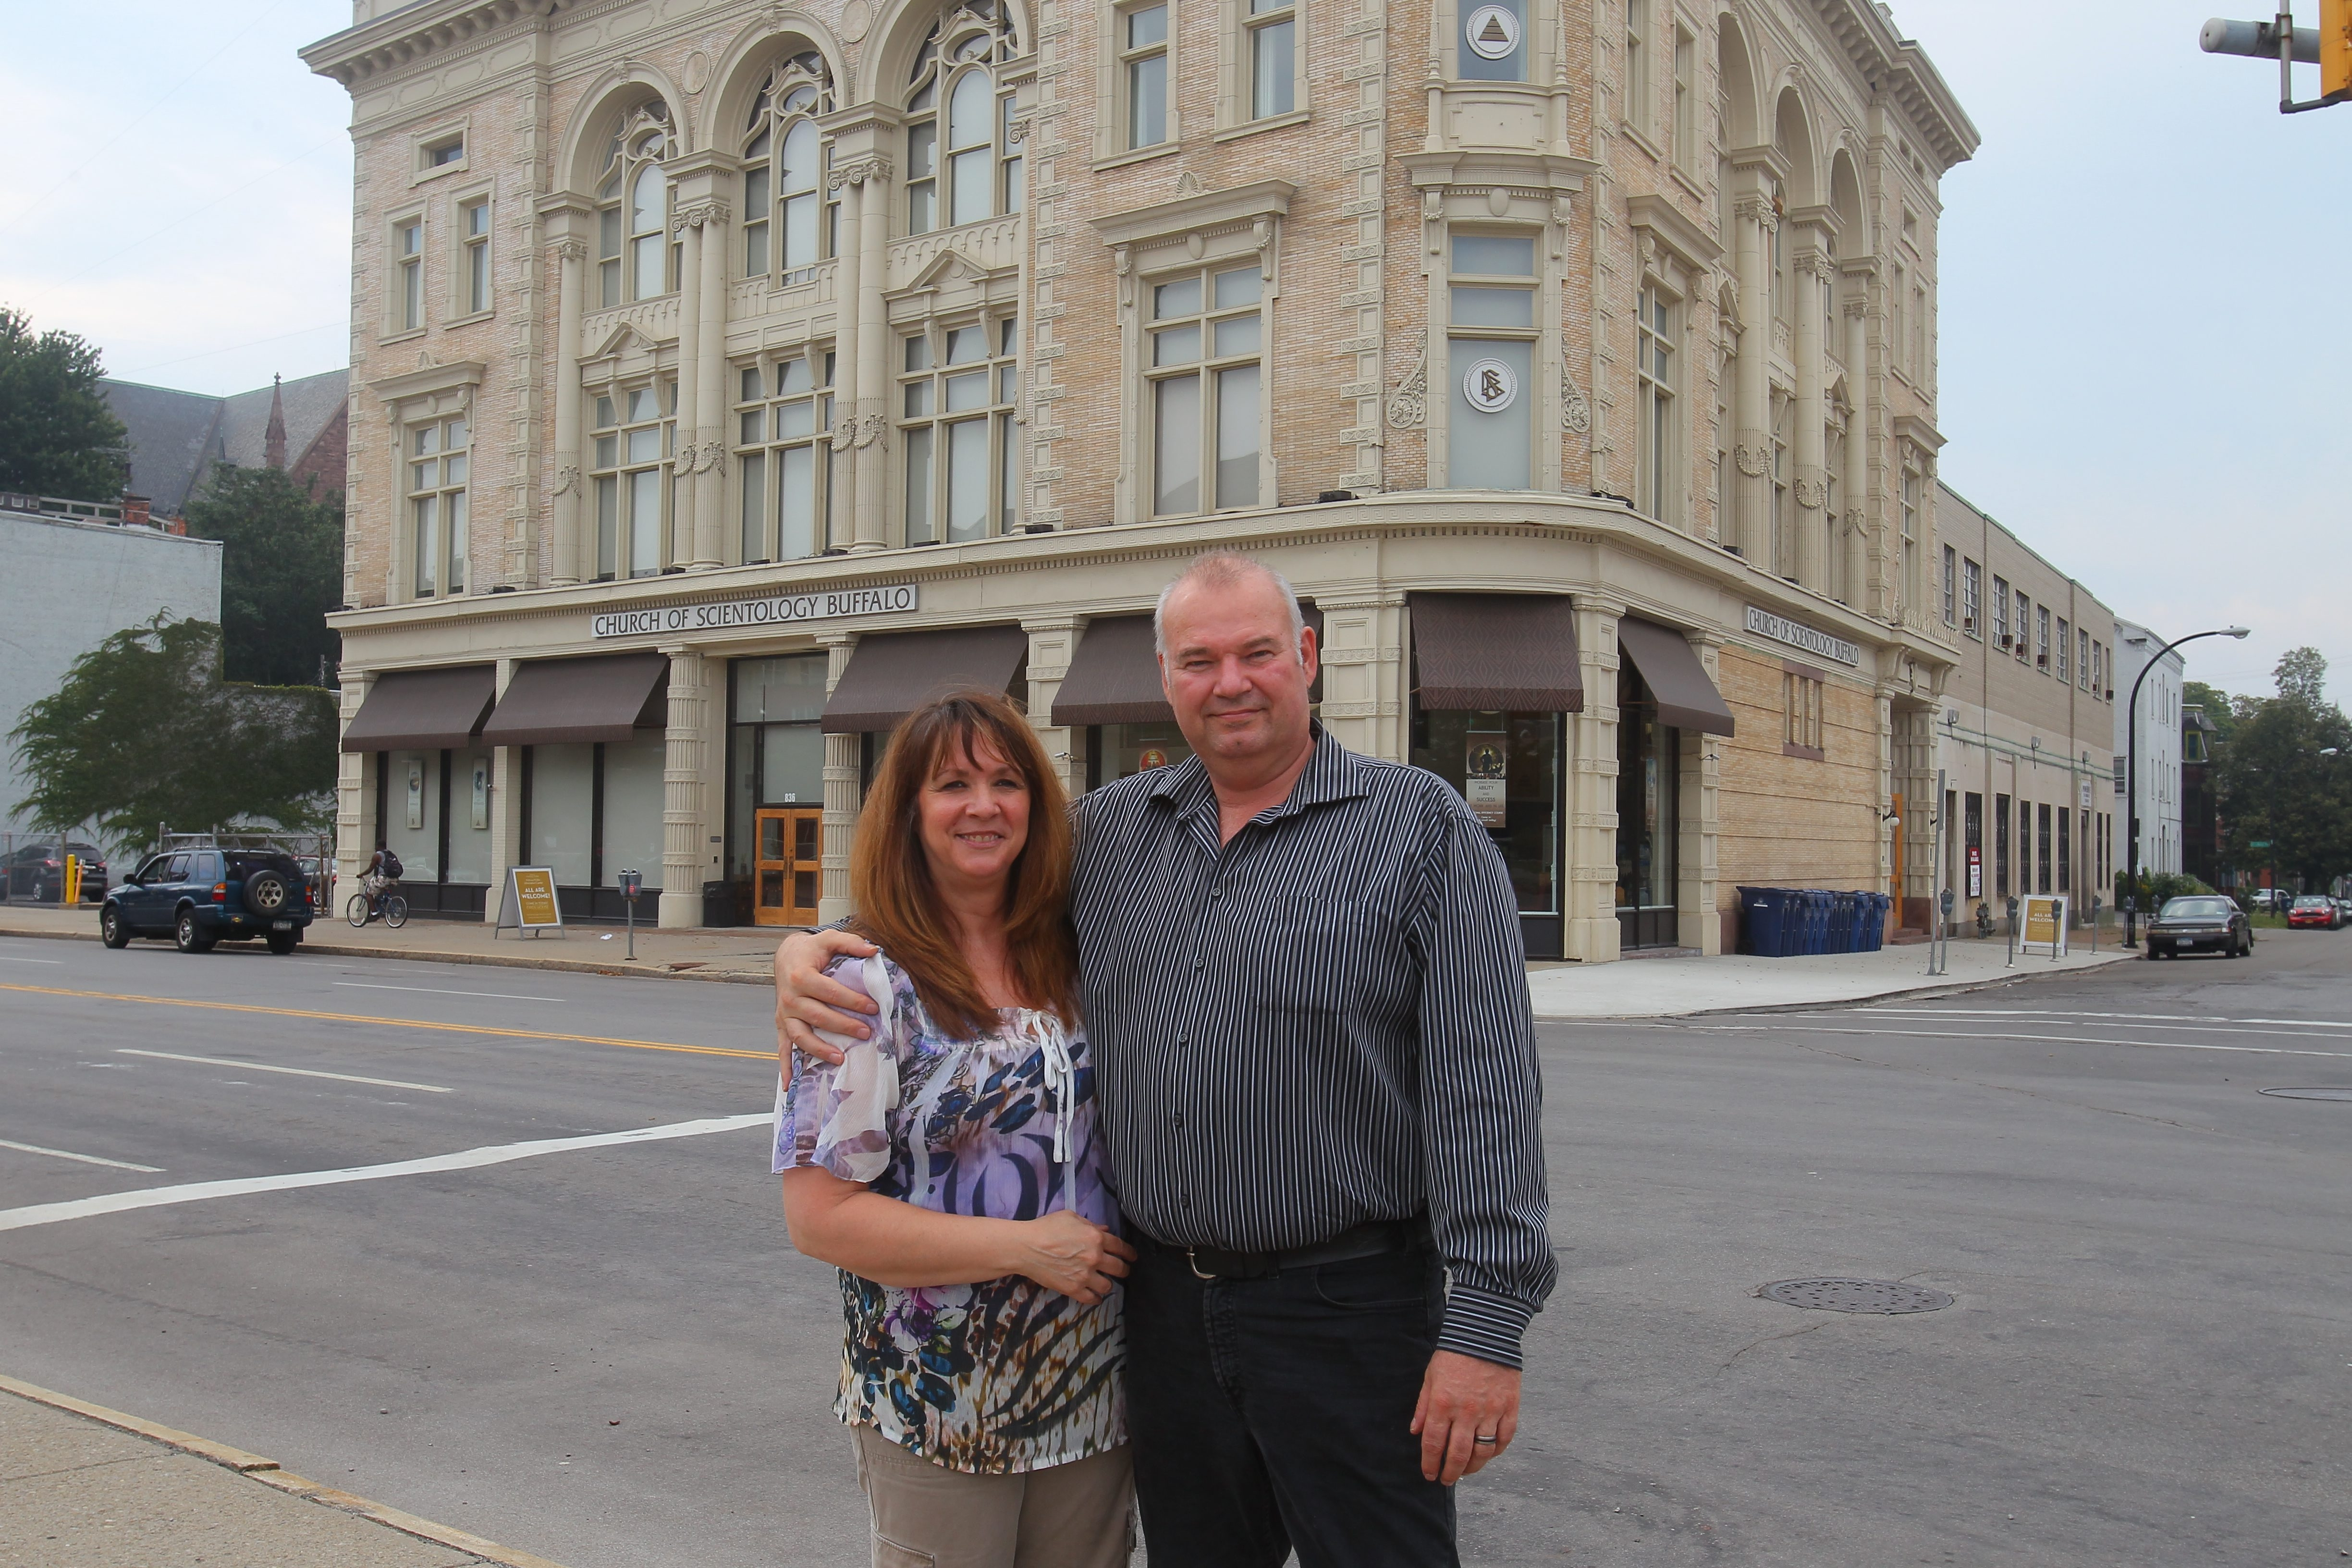 Kim and Michel Brillon, former members of the Church of Scientology who are now on the outs with the church, stand outside the church at Main and Virginia streets in Buffalo on Aug. 27.